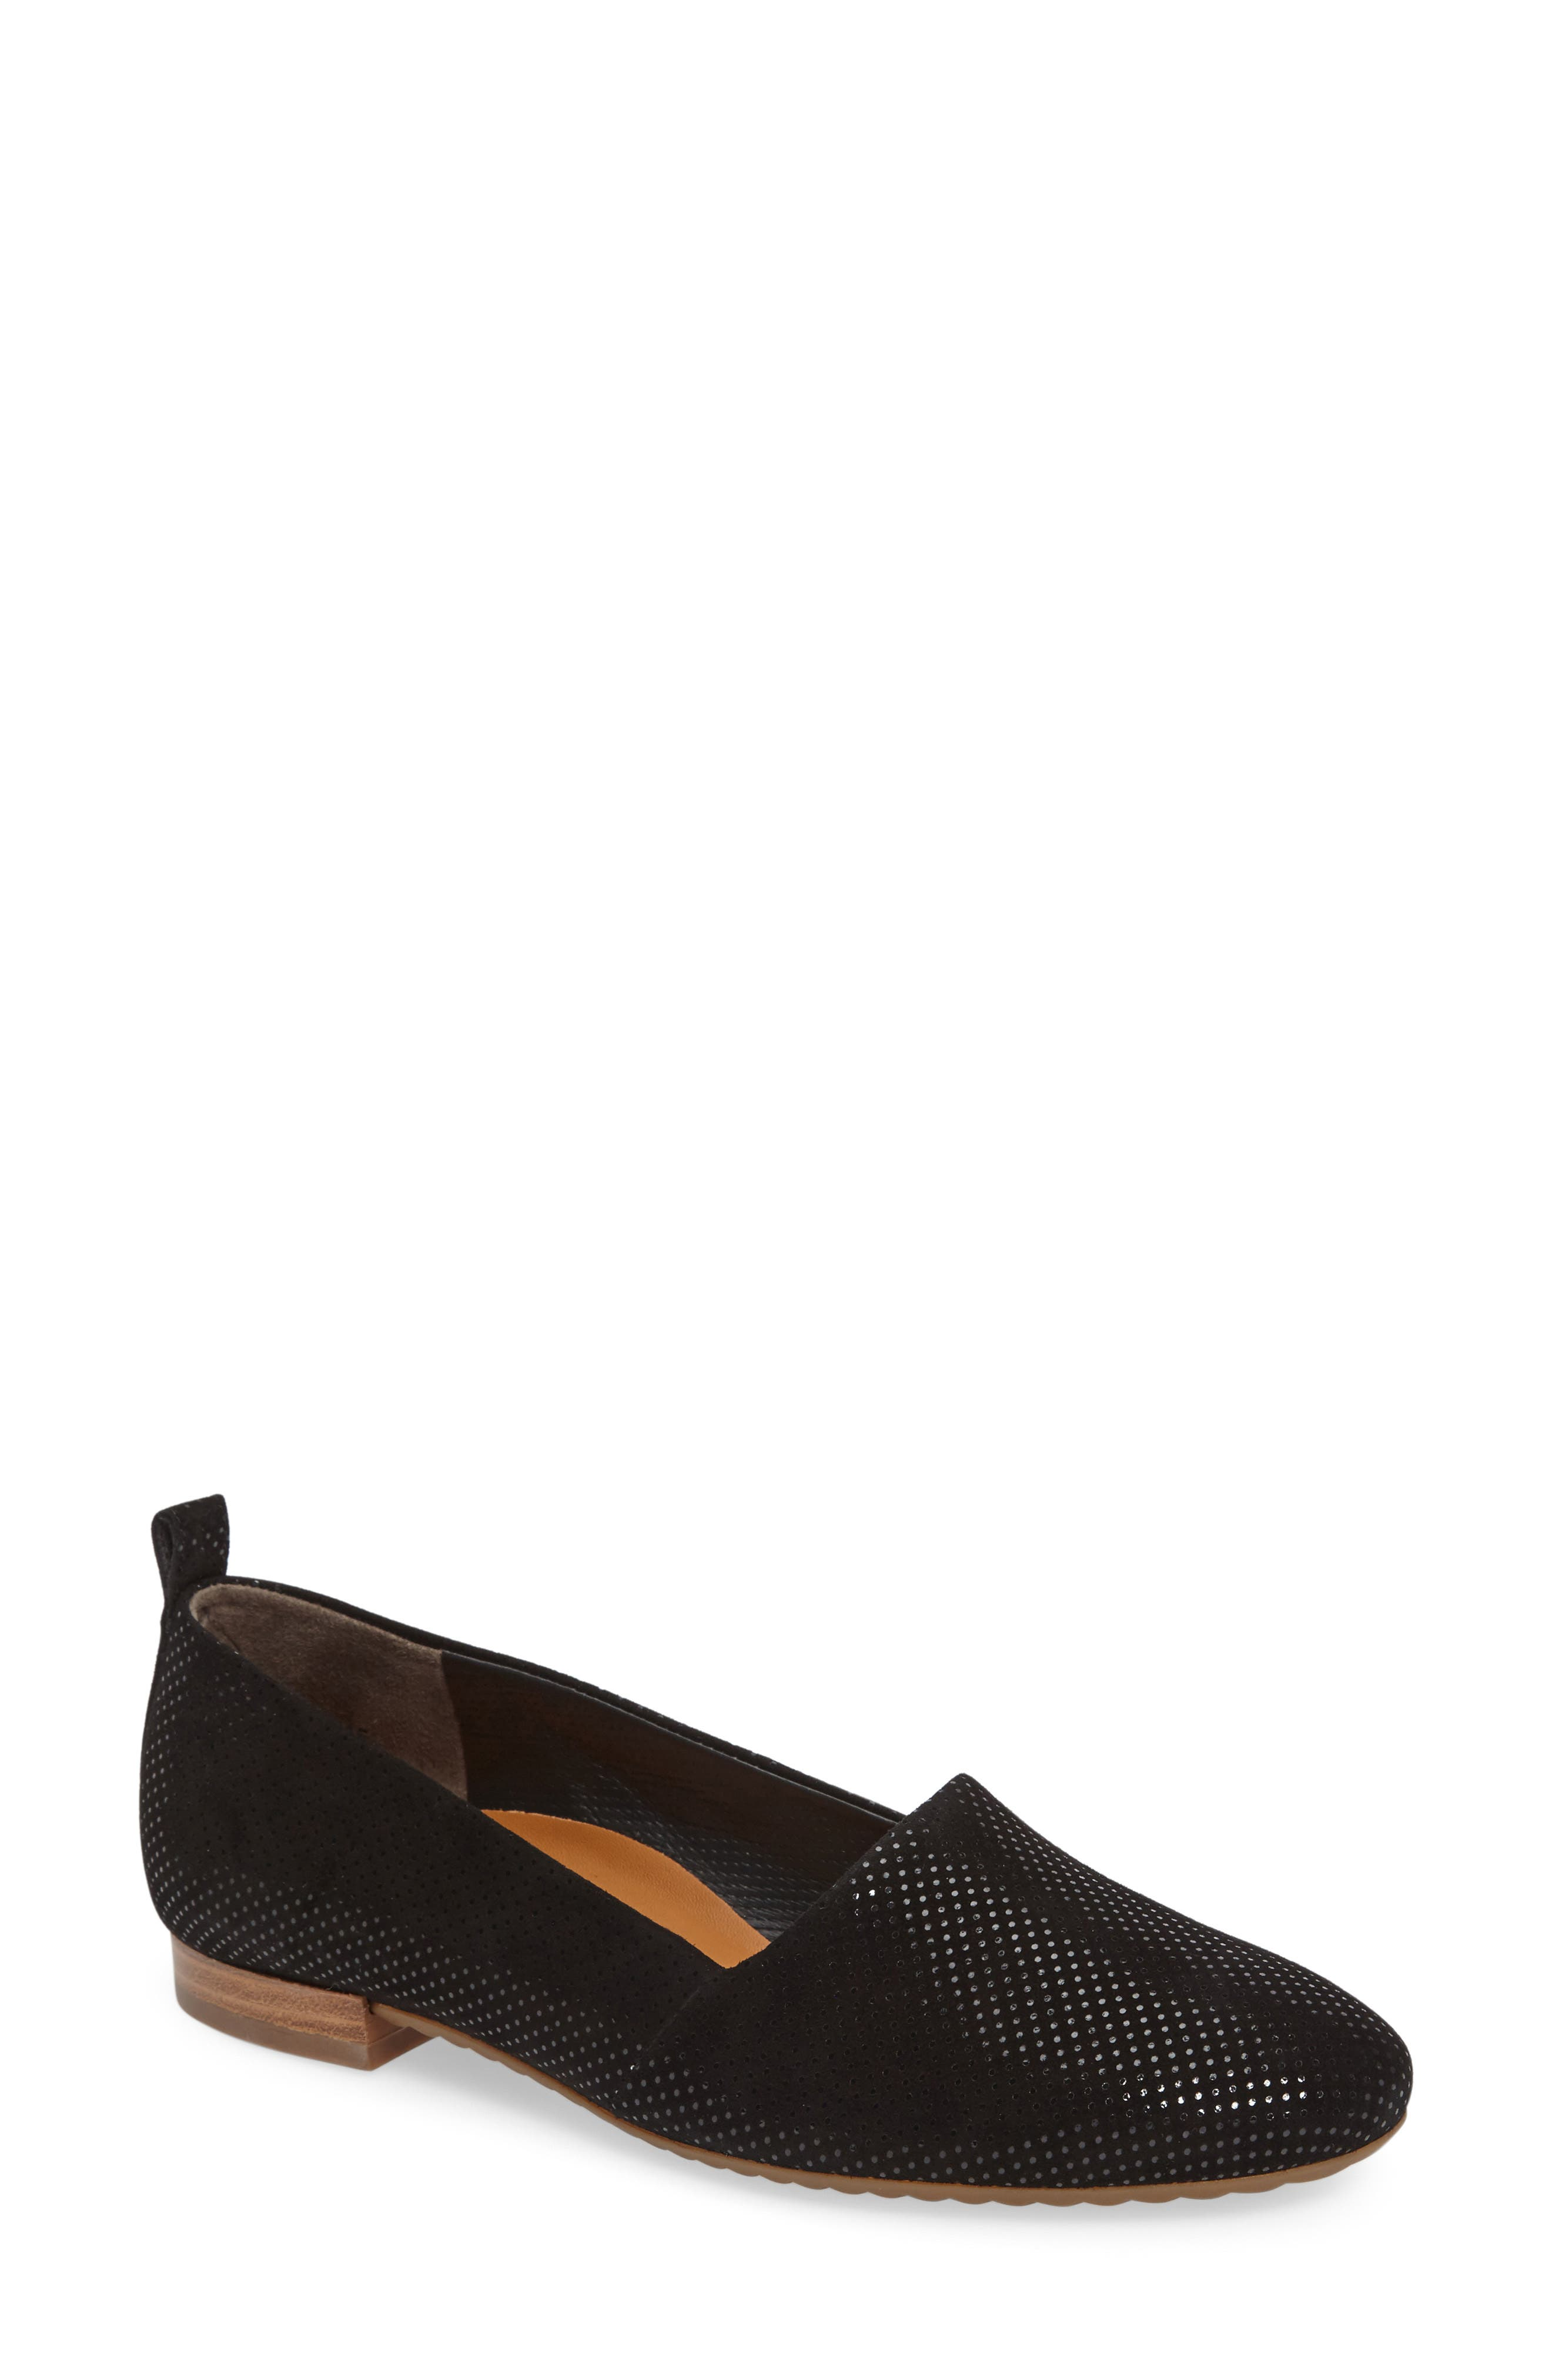 PAUL GREEN Lenny Perforated Loafer